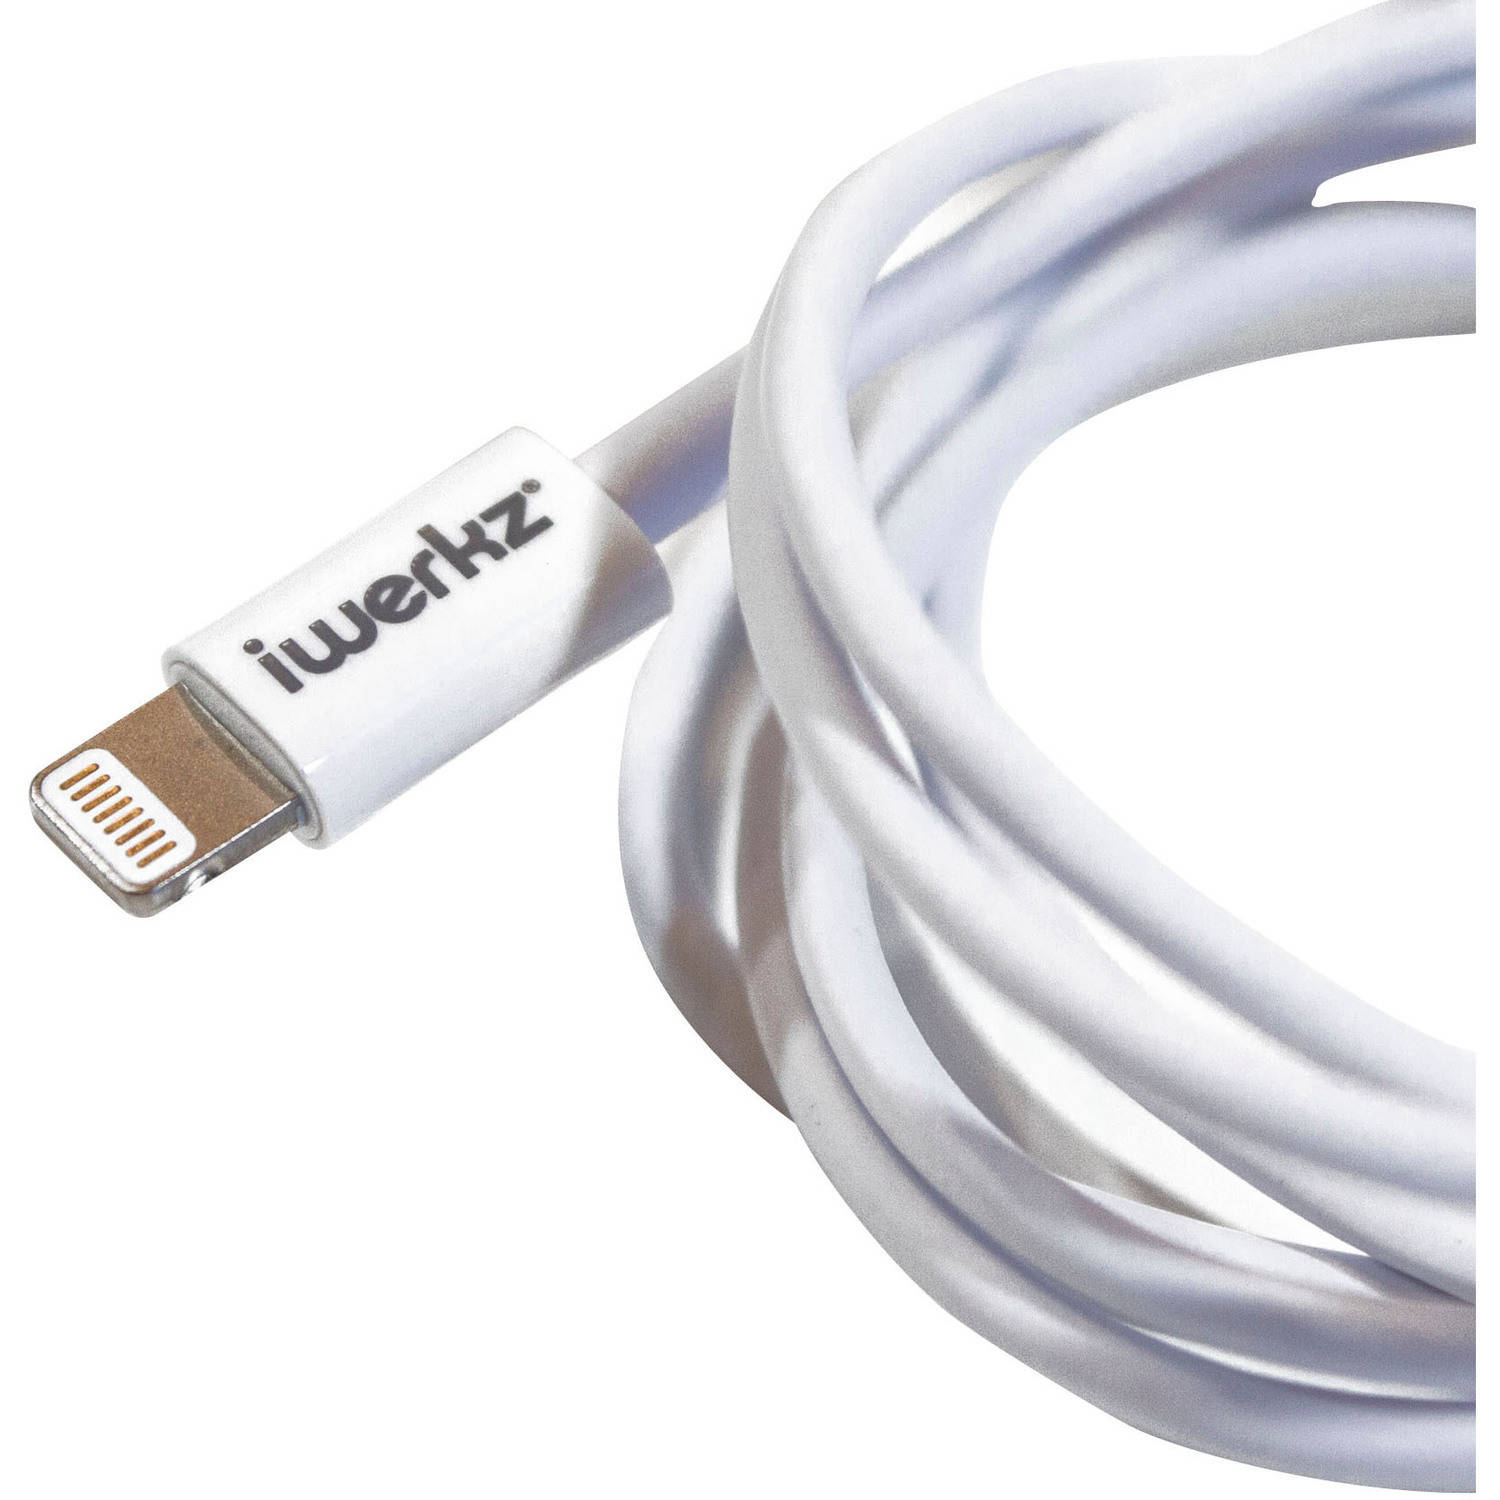 iWerkz Lightning Charge and Sync Cable, 4'